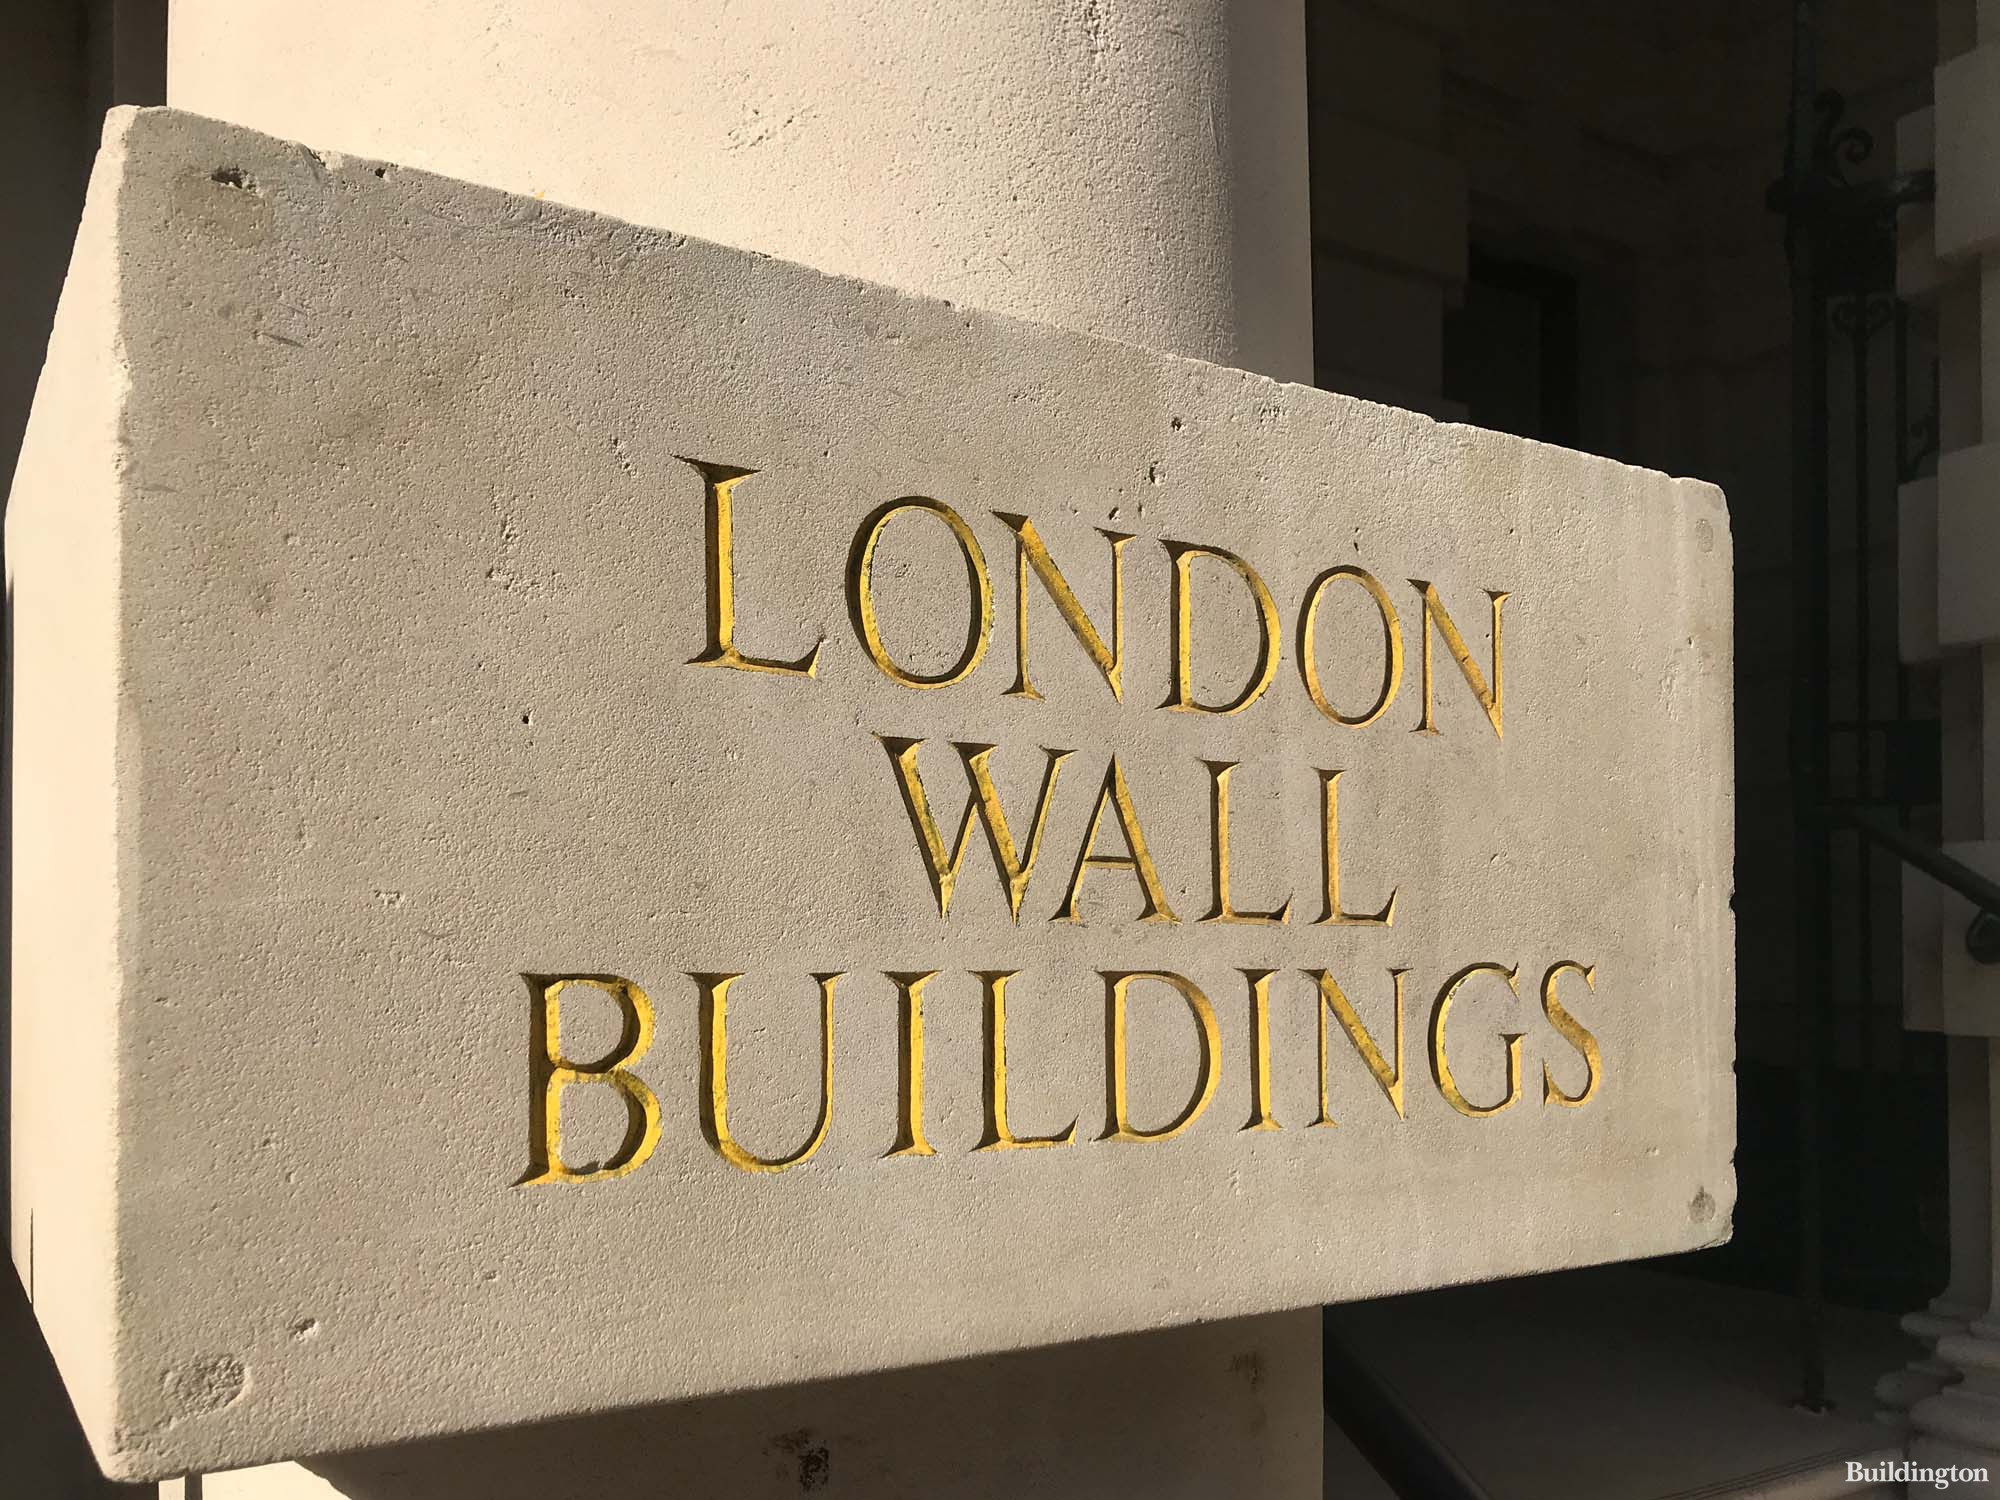 Grade II listed London Wall Buildings in the City of London EC2.